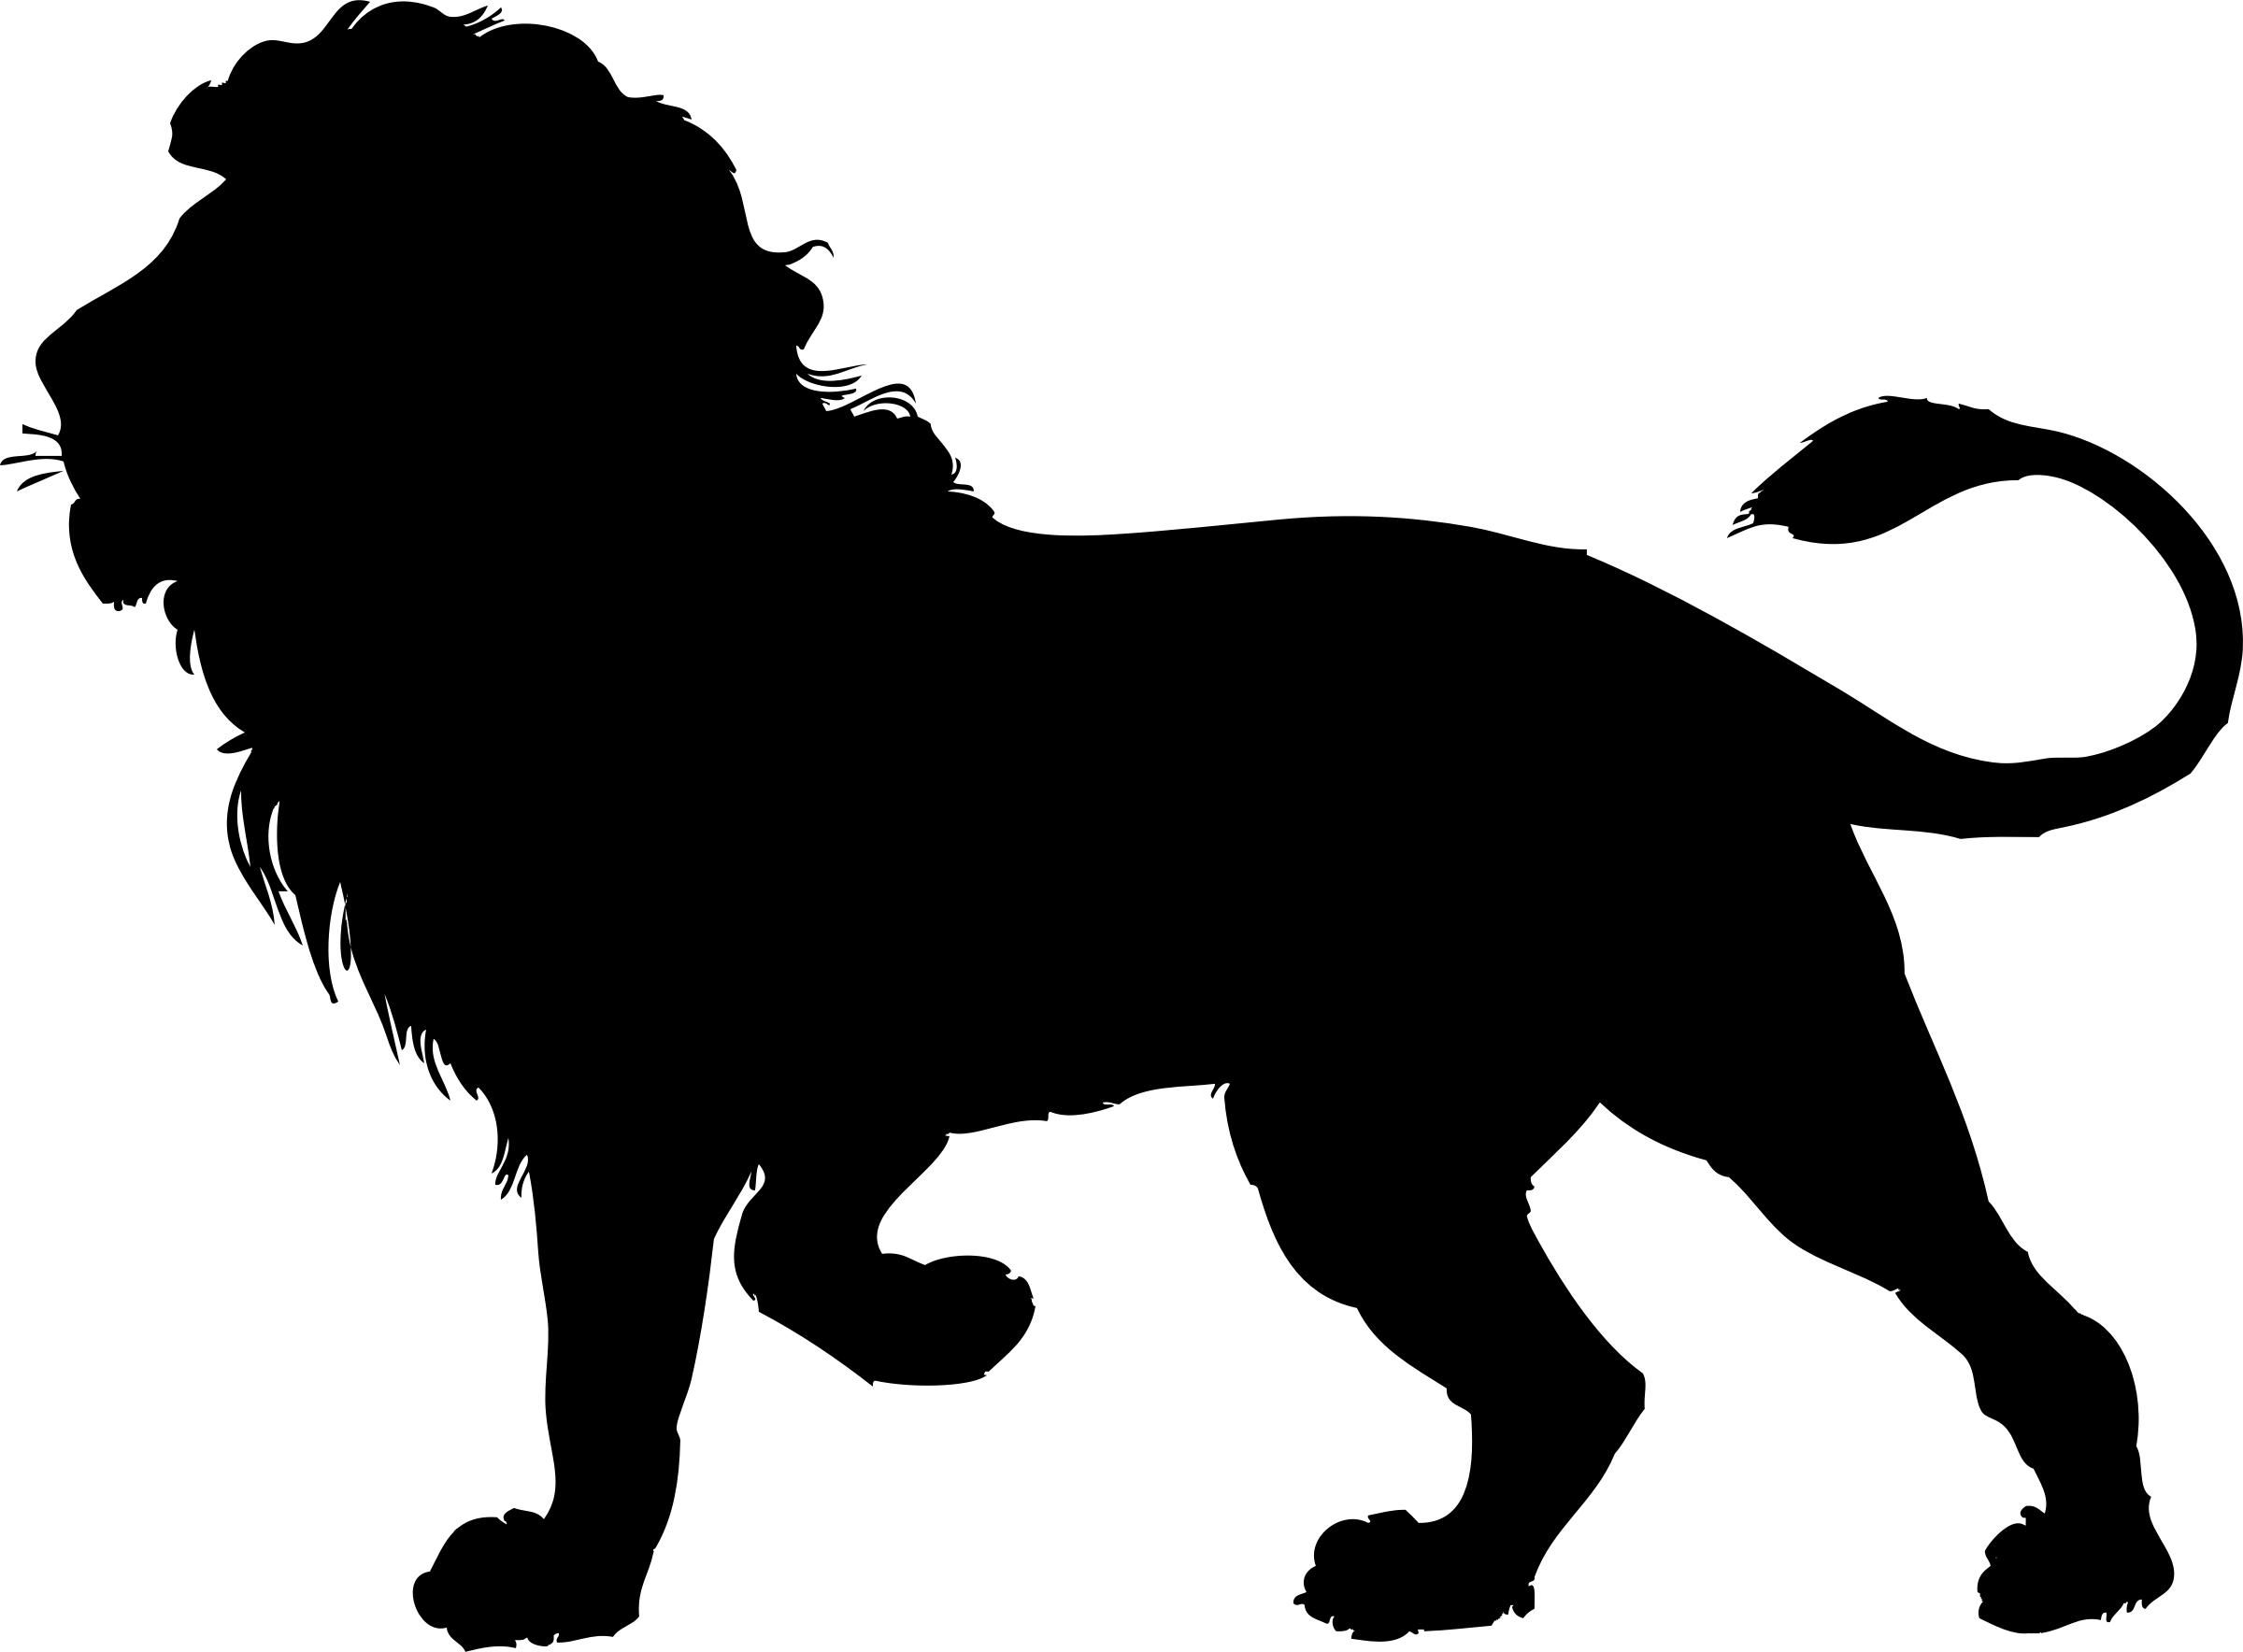 Lion Outline Lion Silhouette Lion Drawing Animal Outline Explore and download more than million+ free png transparent images. lion outline lion silhouette lion